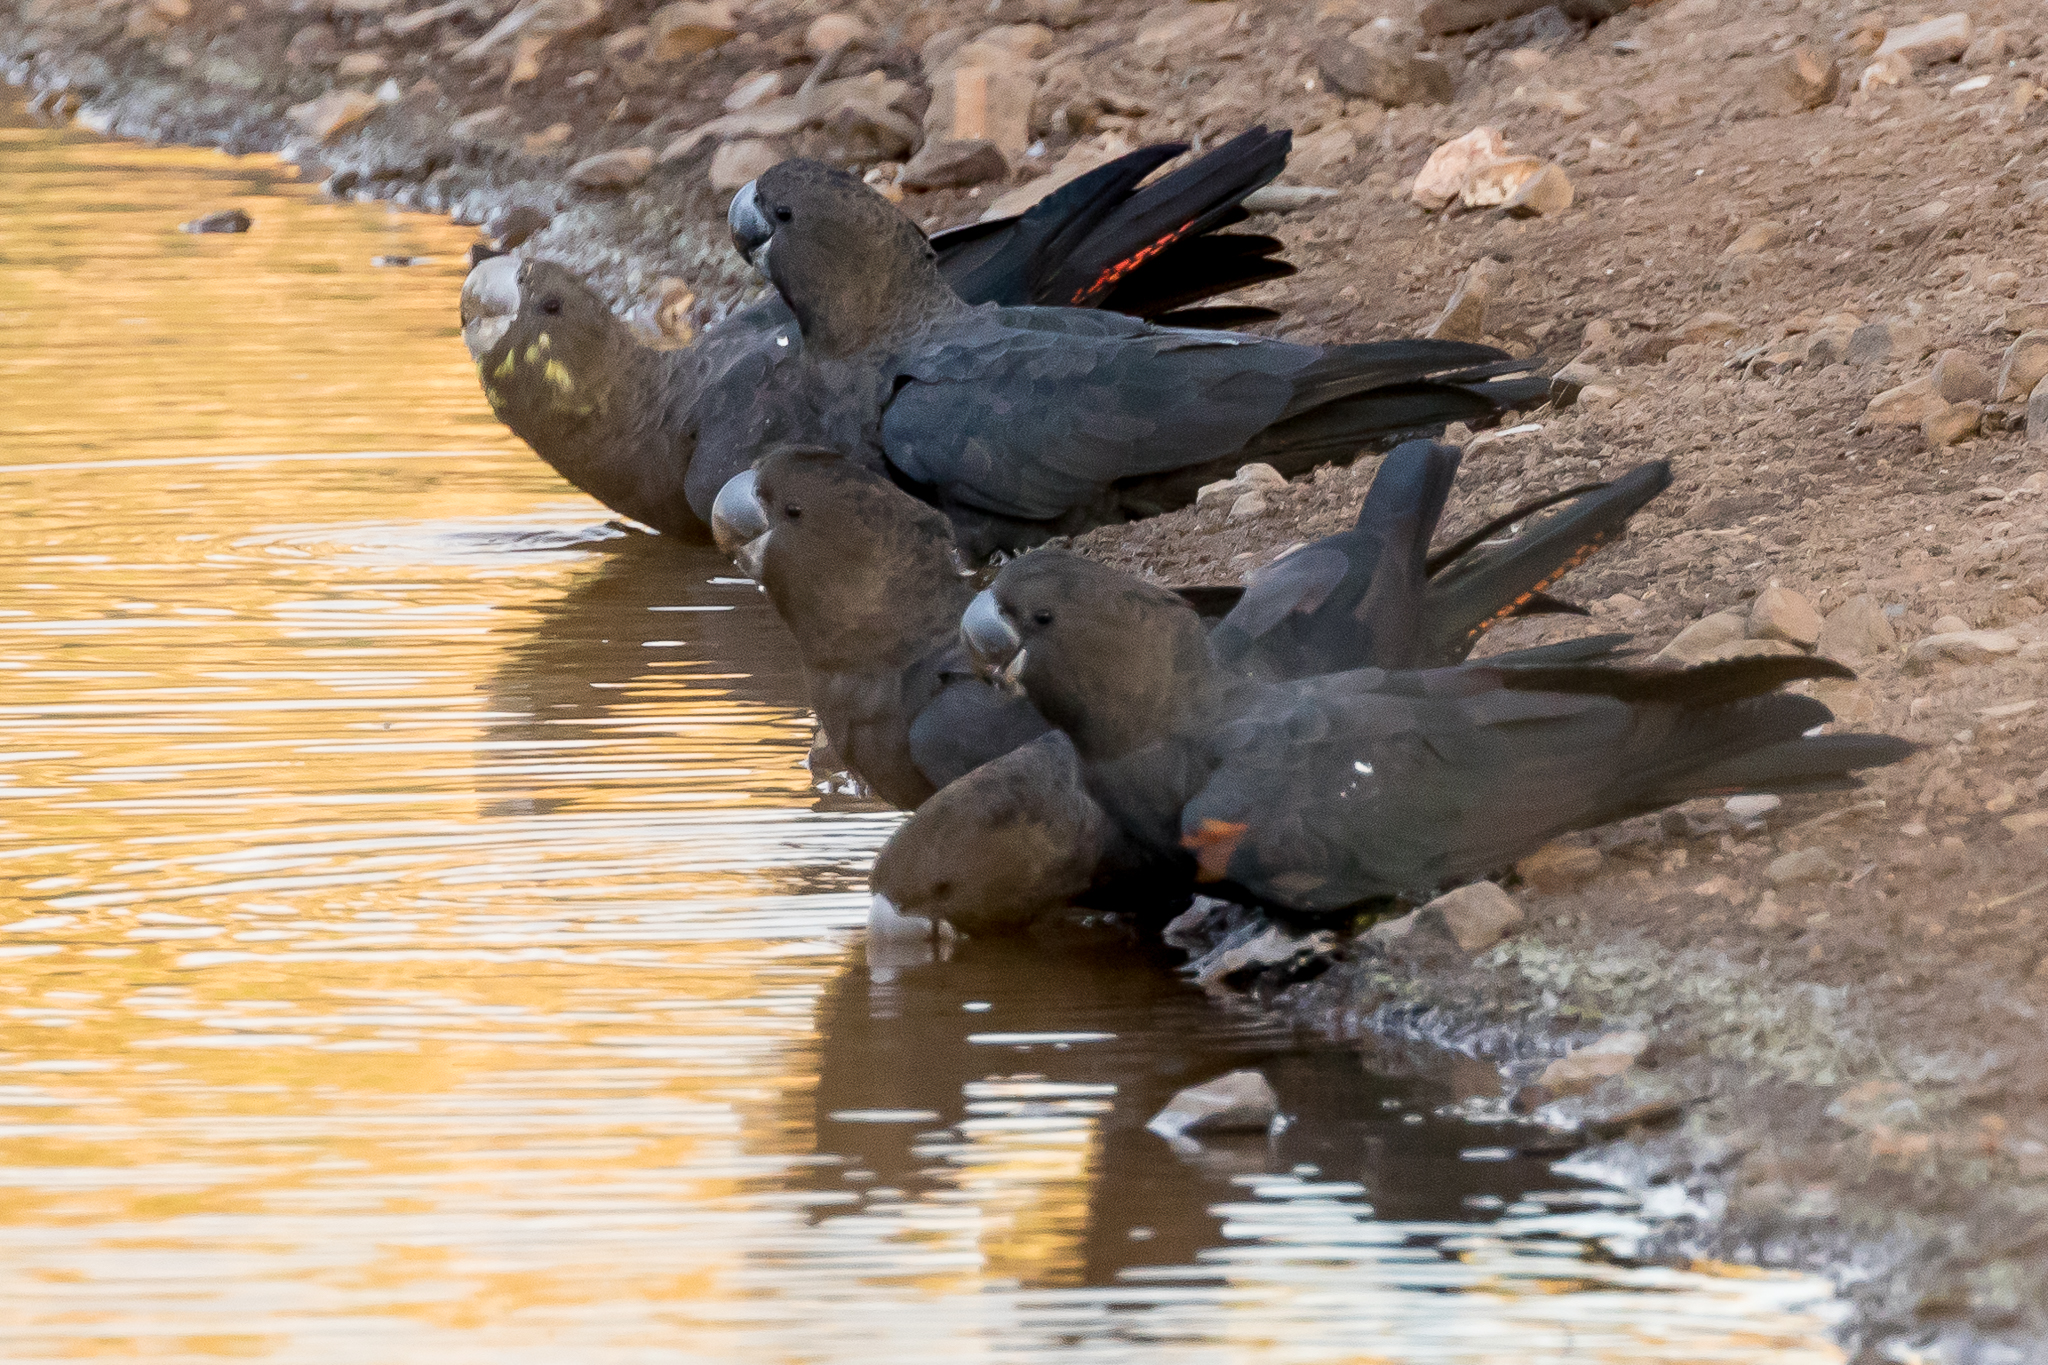 These Glossy Black-Cockatoos (50 cm) drink at dusk at a waterhole in a large casuarina woodland. They are found in south east Australia, extracting the seed from casuarina cones supplemented by occasional insect larvae.